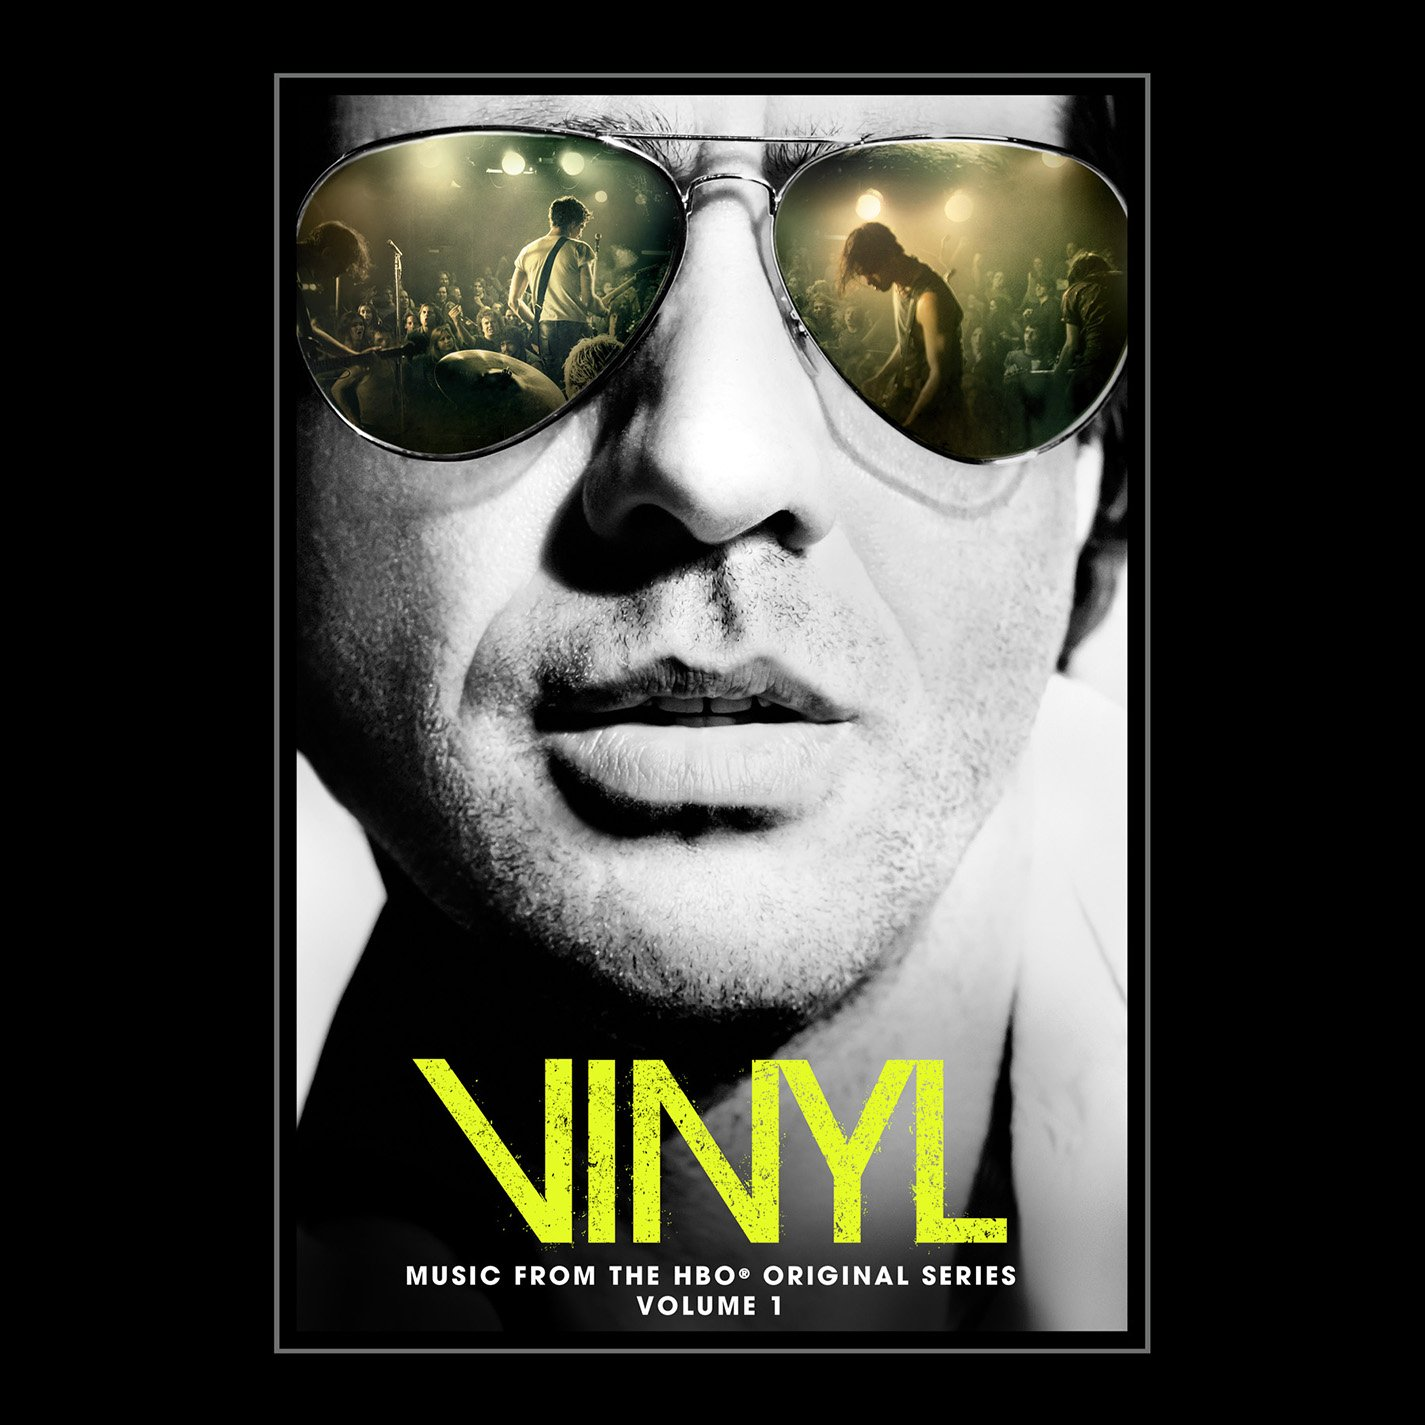 Vinyl:Music from the Hbo Original Series Vol.1 [Vinyl LP] - Ost ...